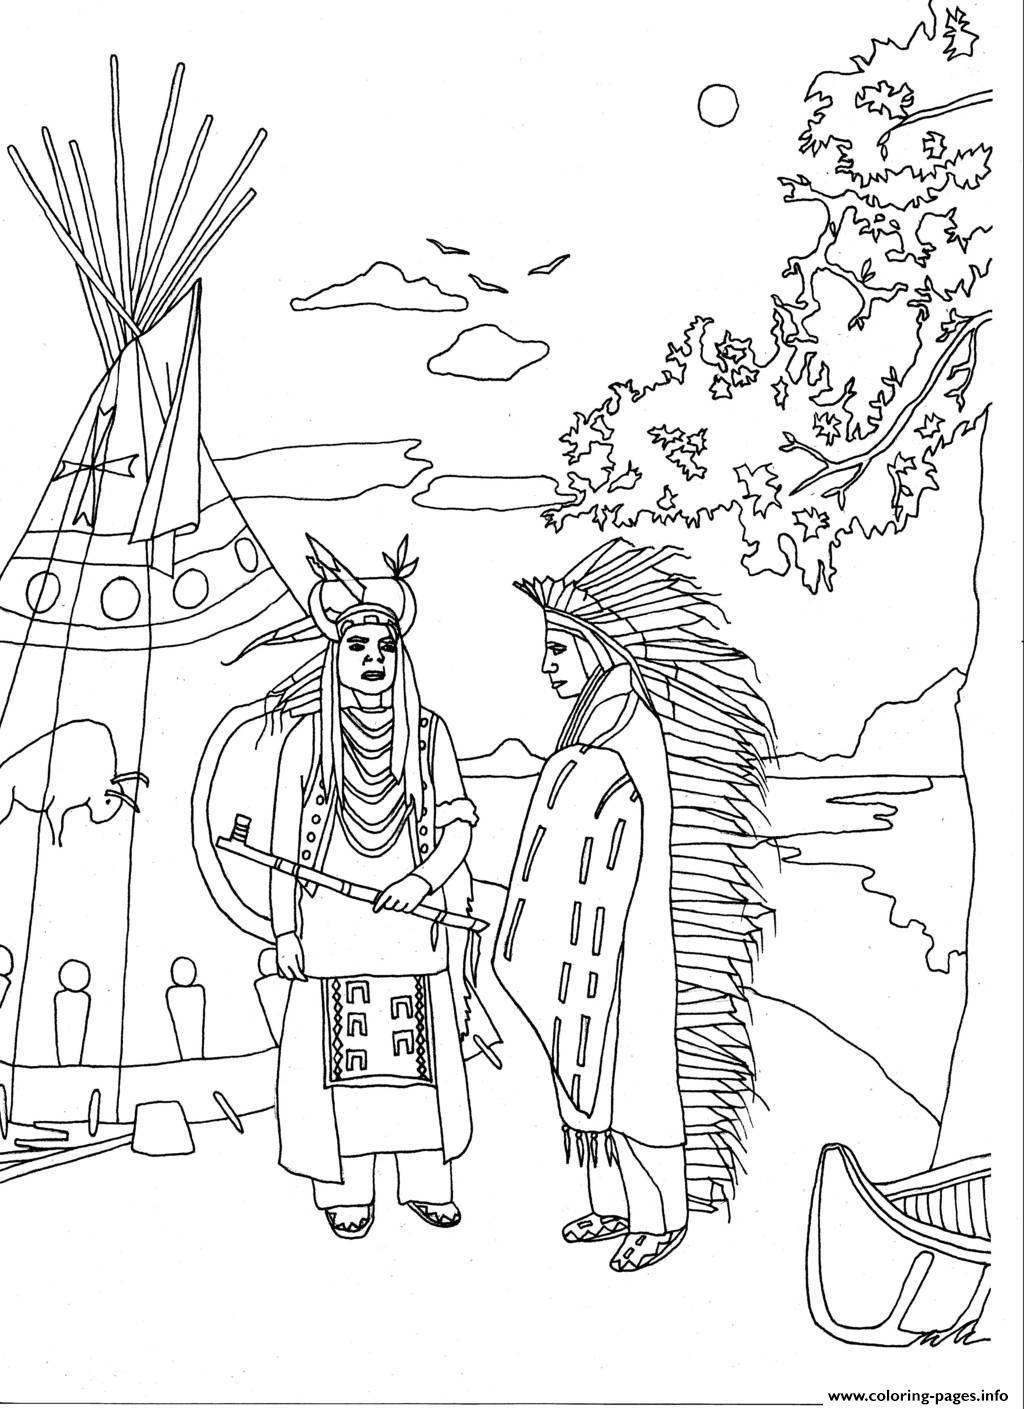 Adult Two Native Americans By Marion C Coloring Pages Printable